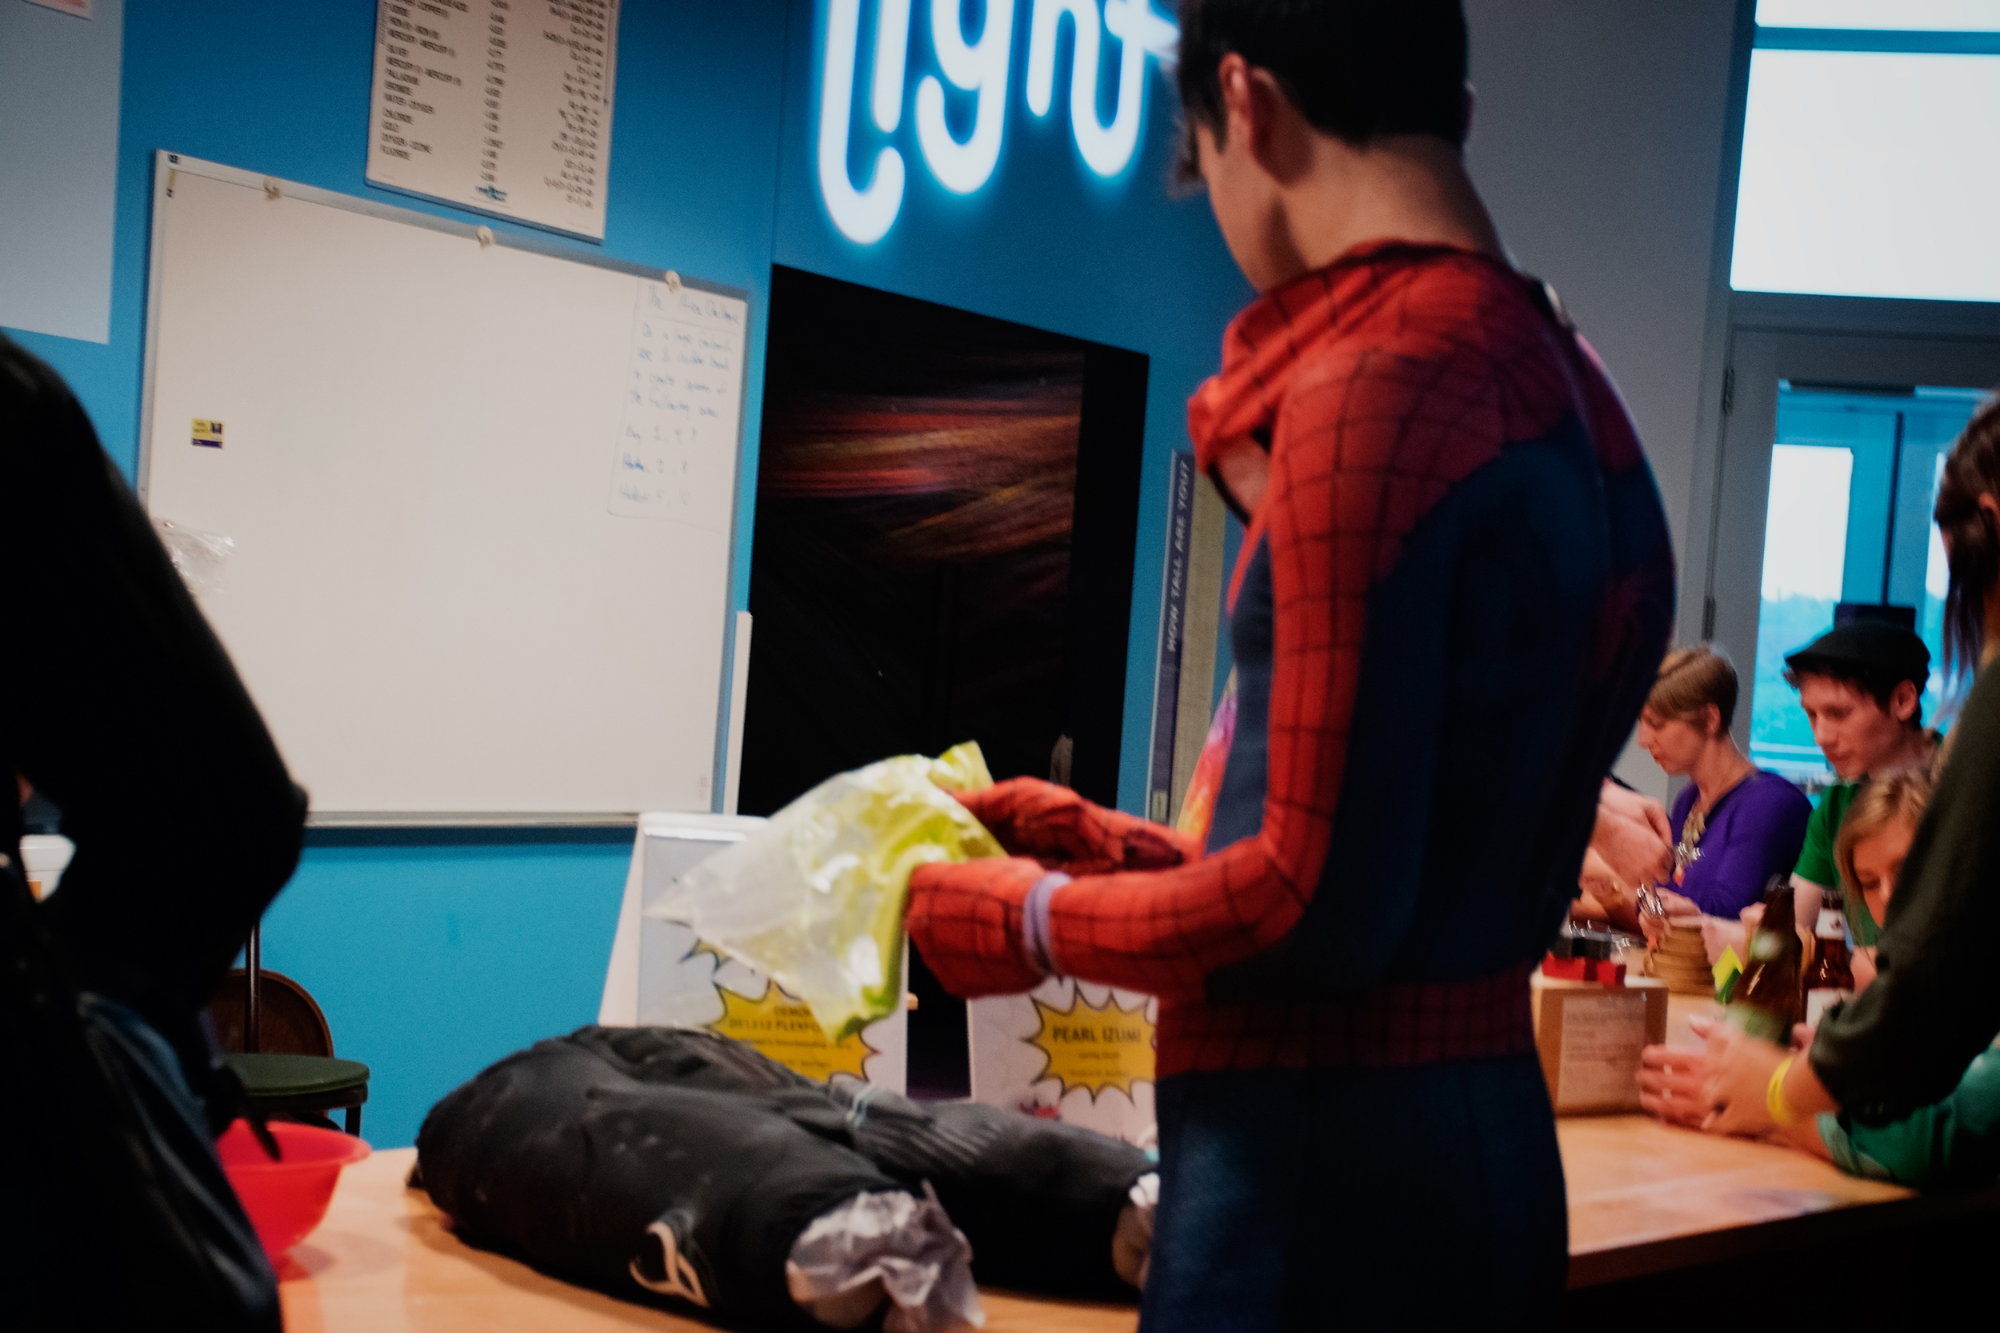 A curious Spiderman contemplates upgrading his spidey-suit.